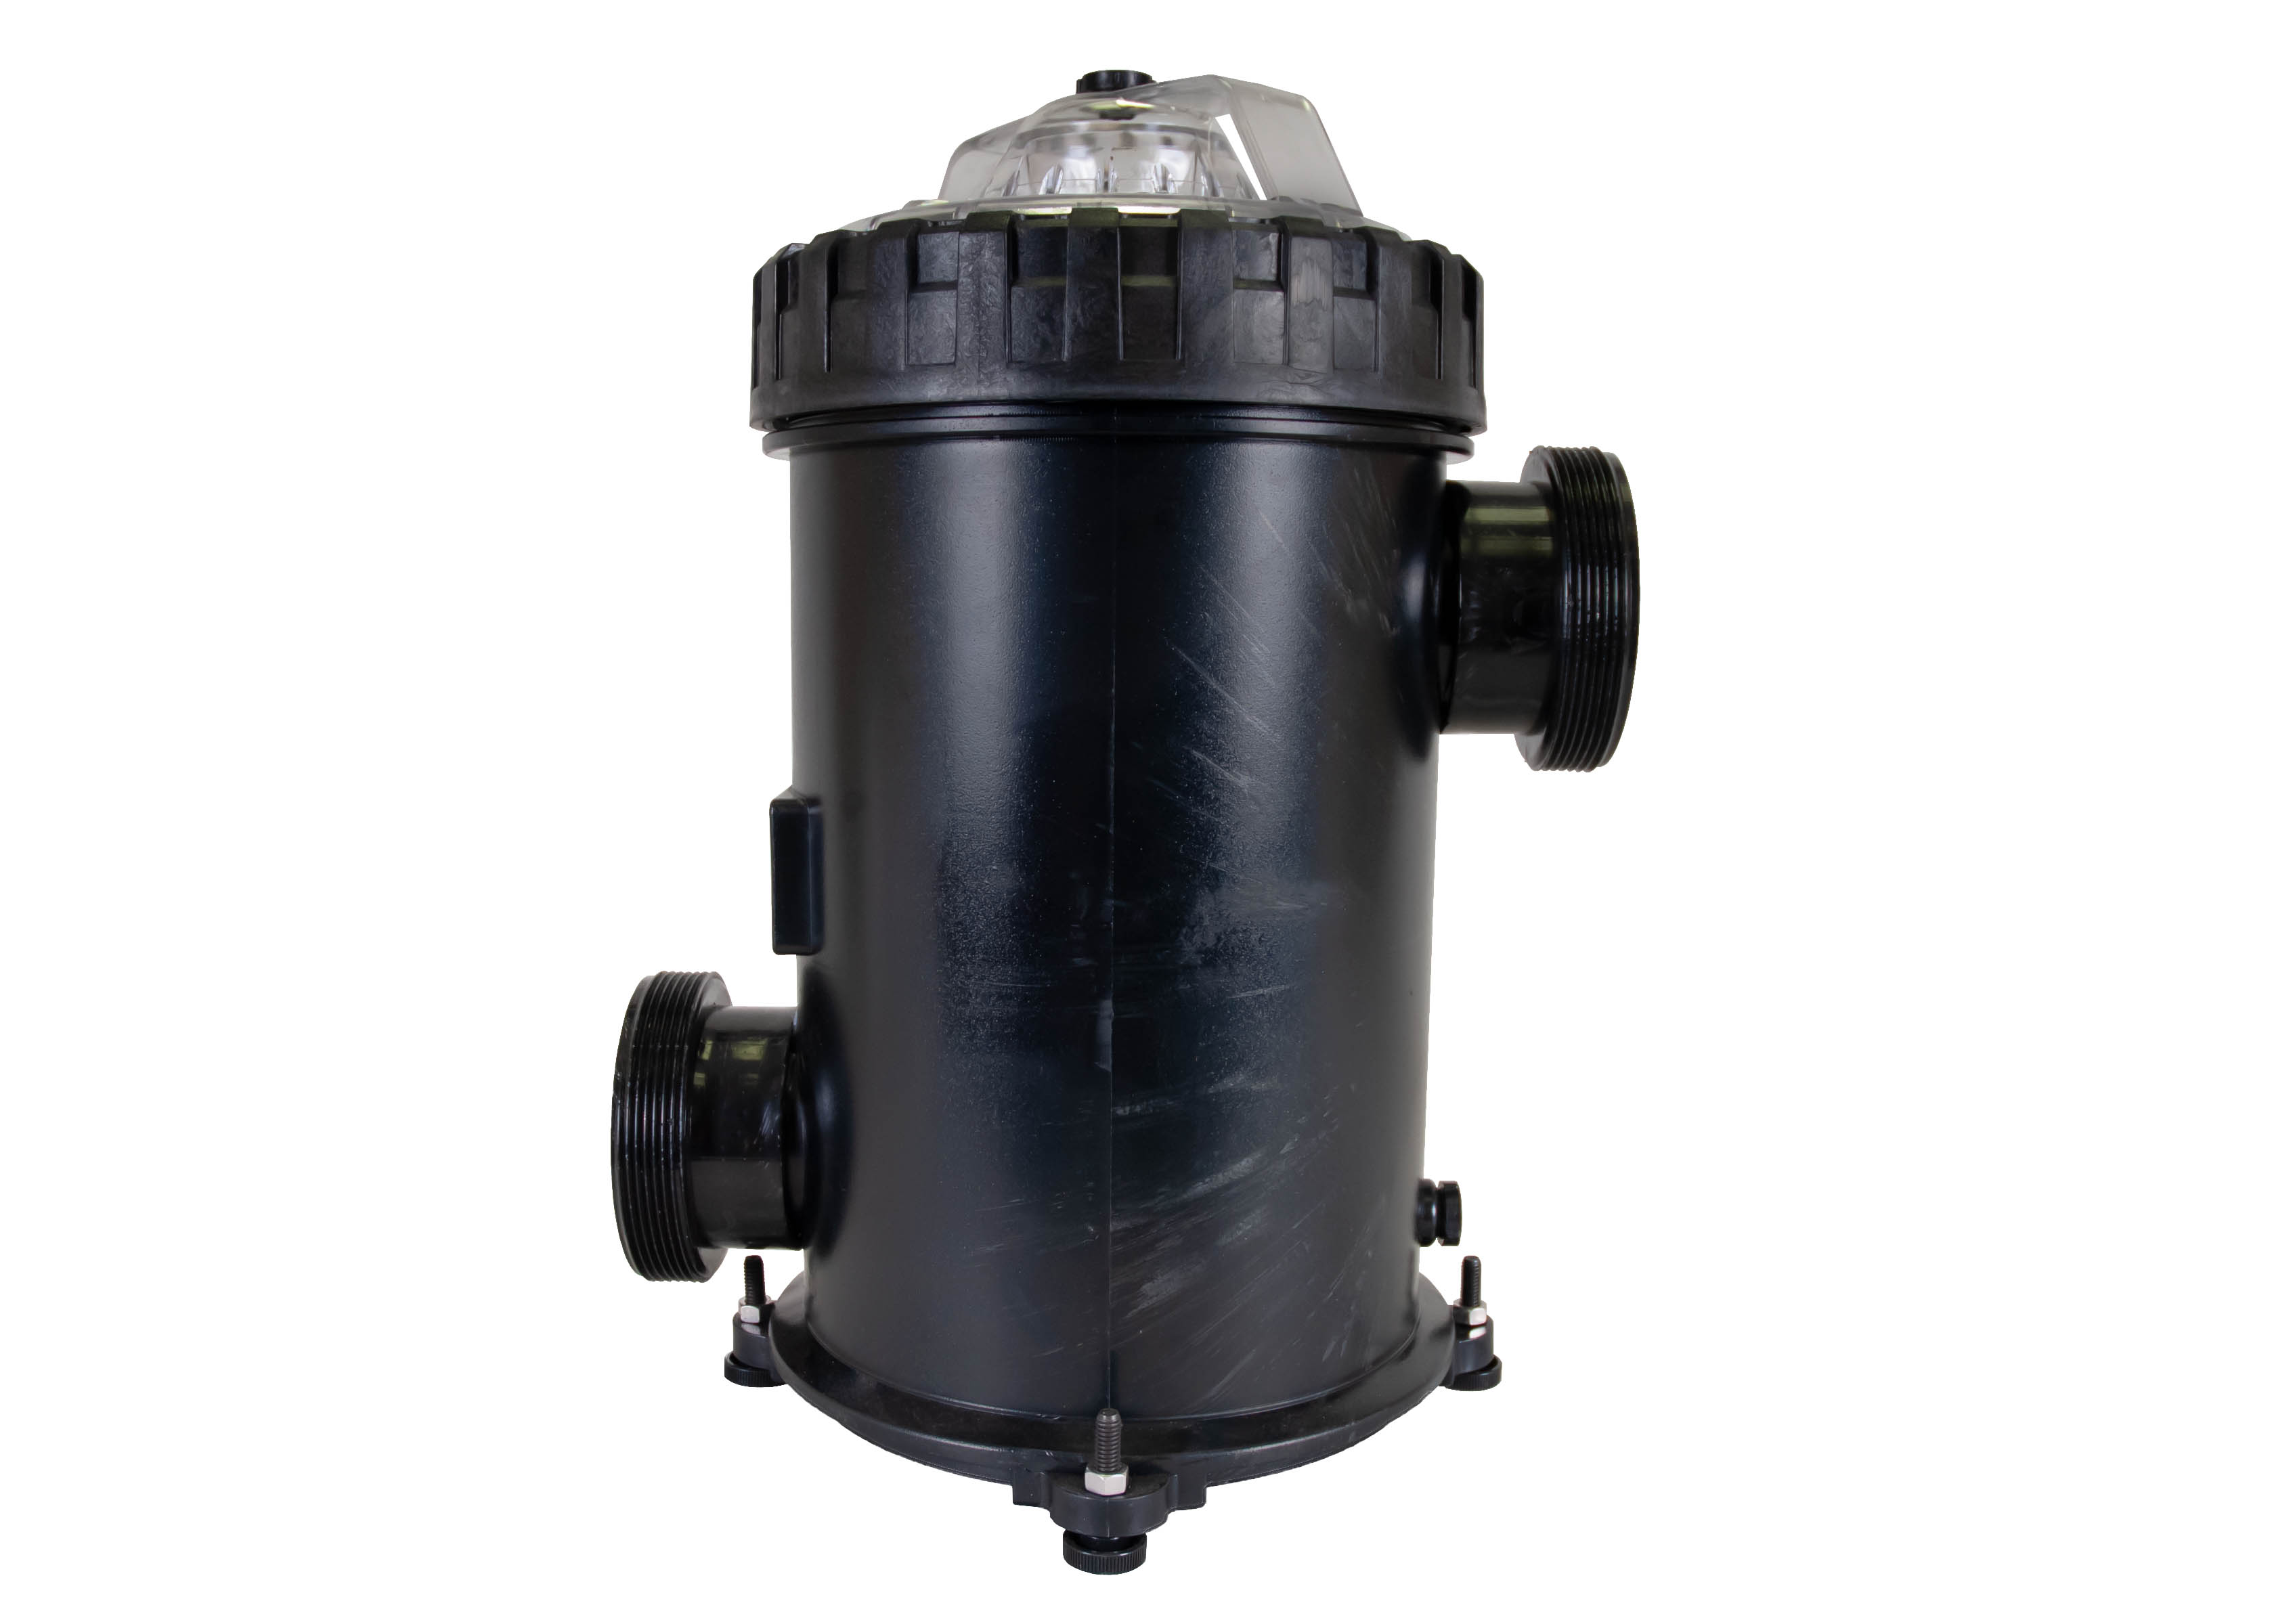 500 cubic liter Strainer Basket with 3 inch ports left side view